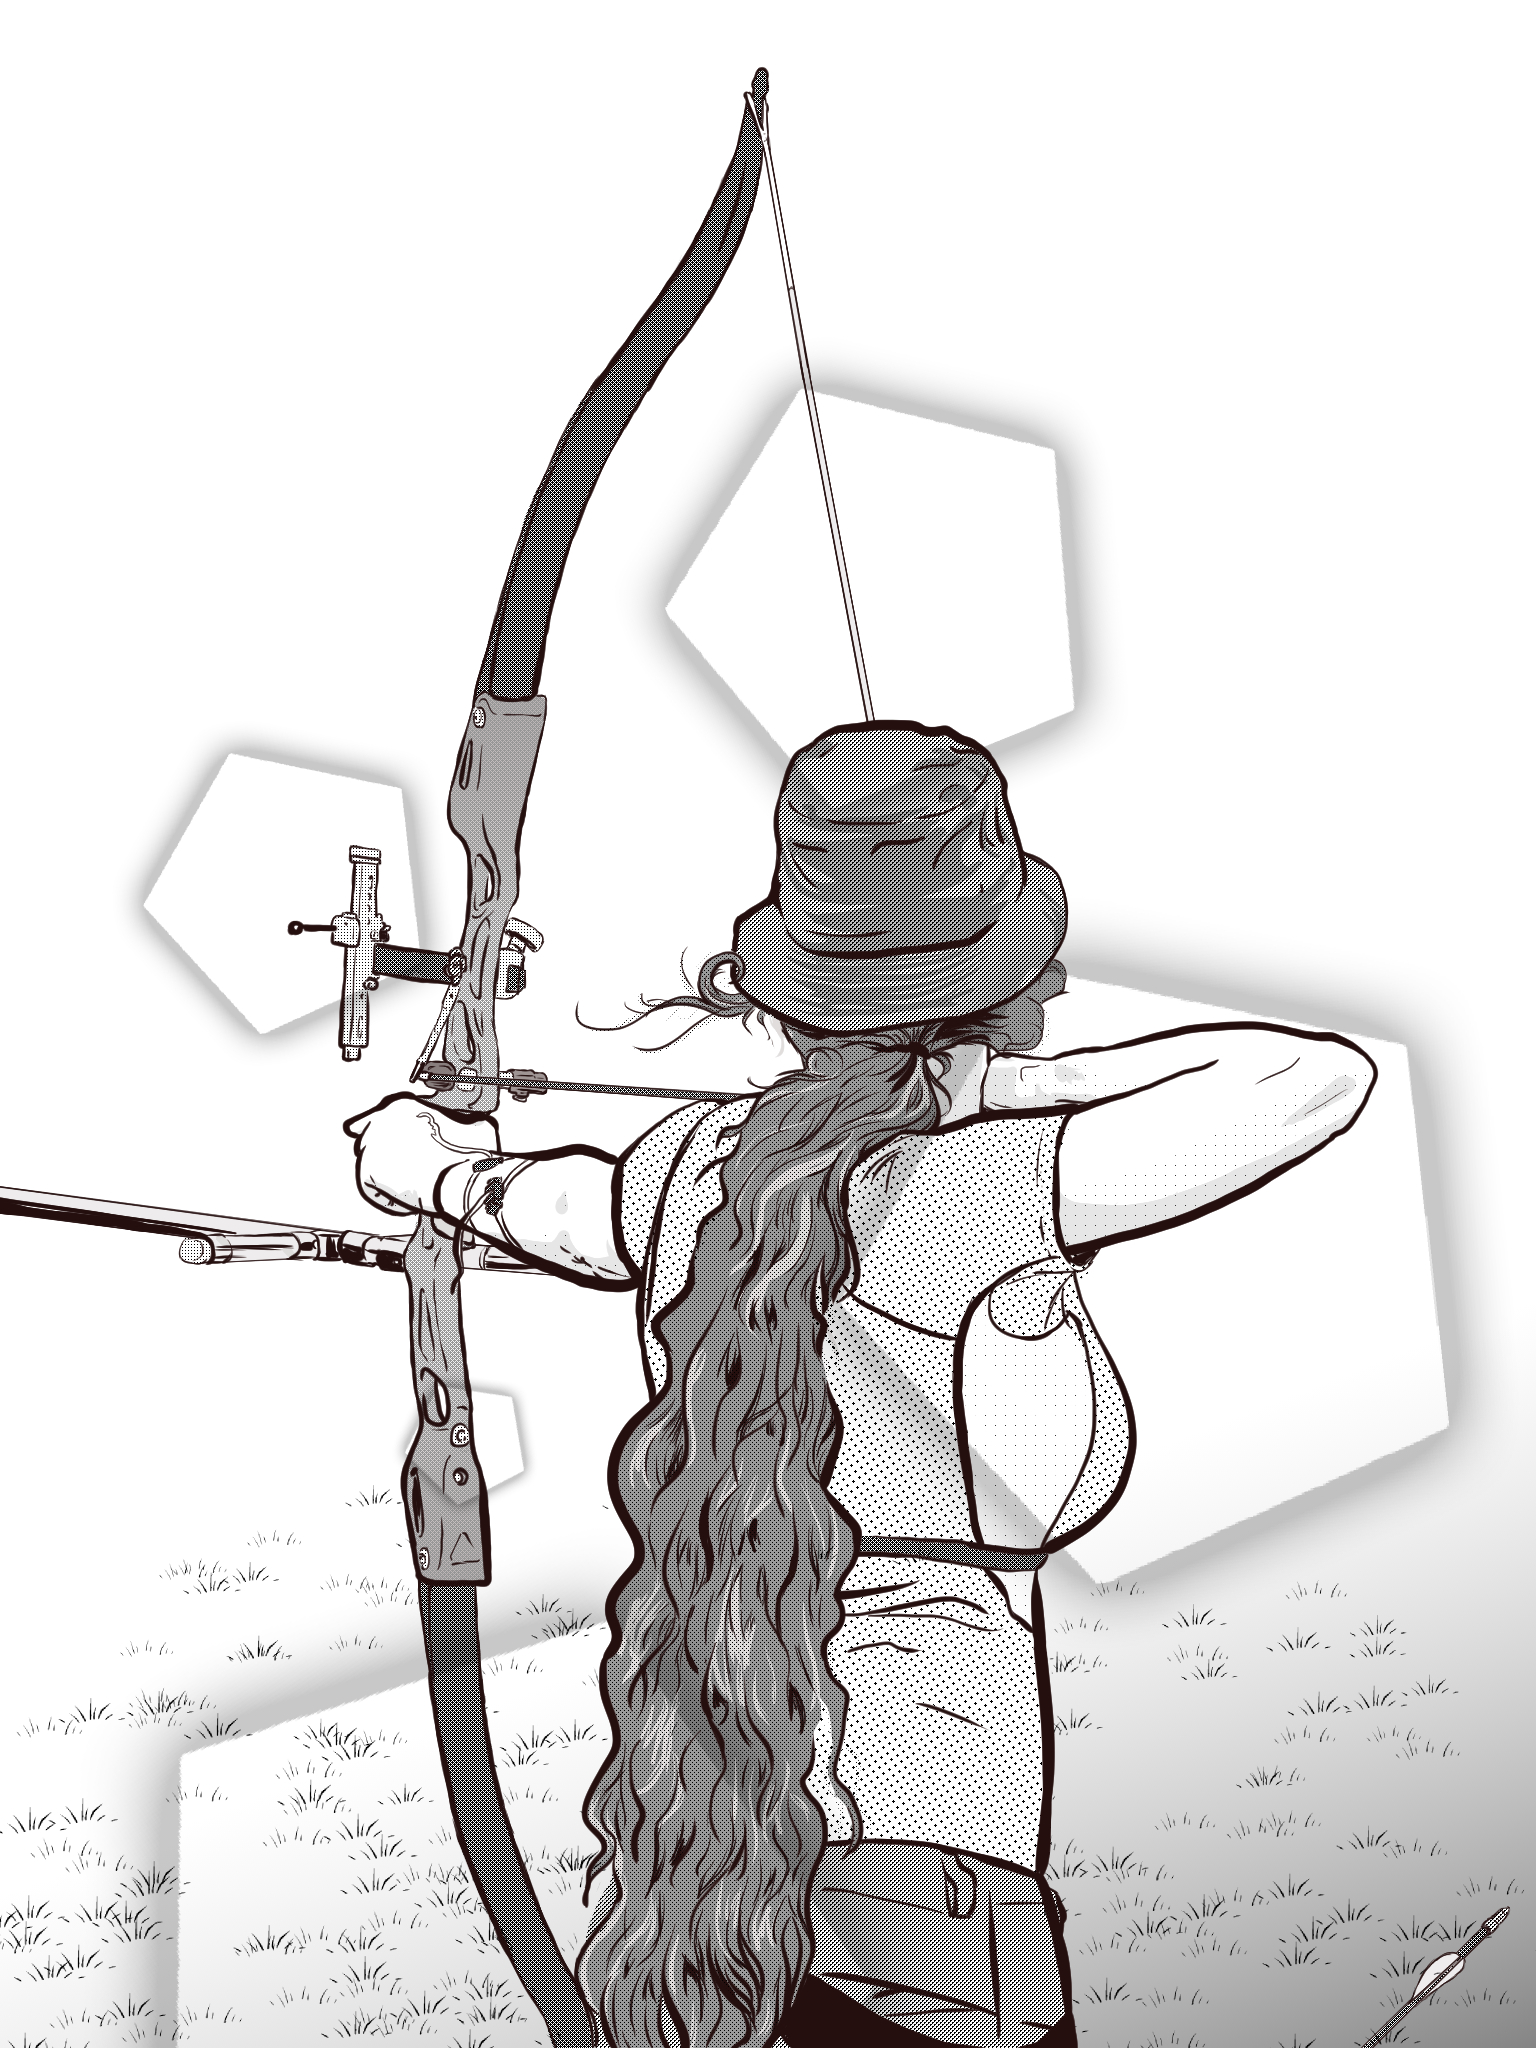 archery self-portrait